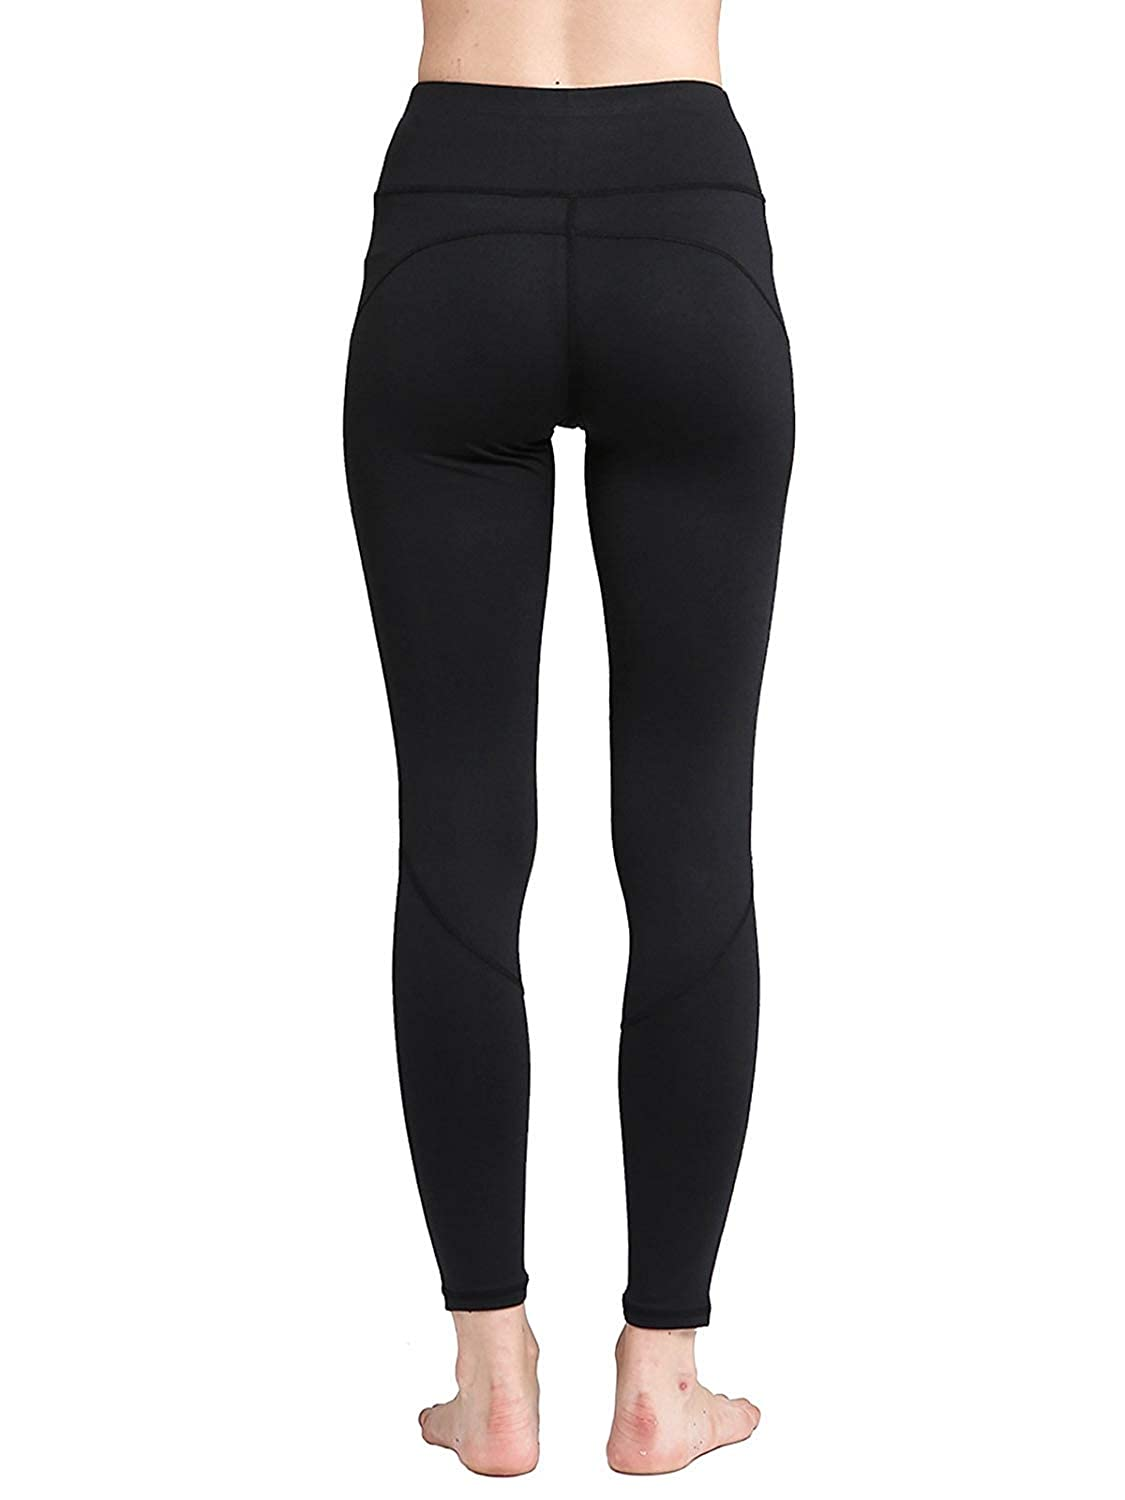 70052ebf4c5a Amazon.com  Misscoo Yoga Pant Power Flex High Waist Women Leggings Workout  Running Activewear Tummy Control Pants Black  Clothing